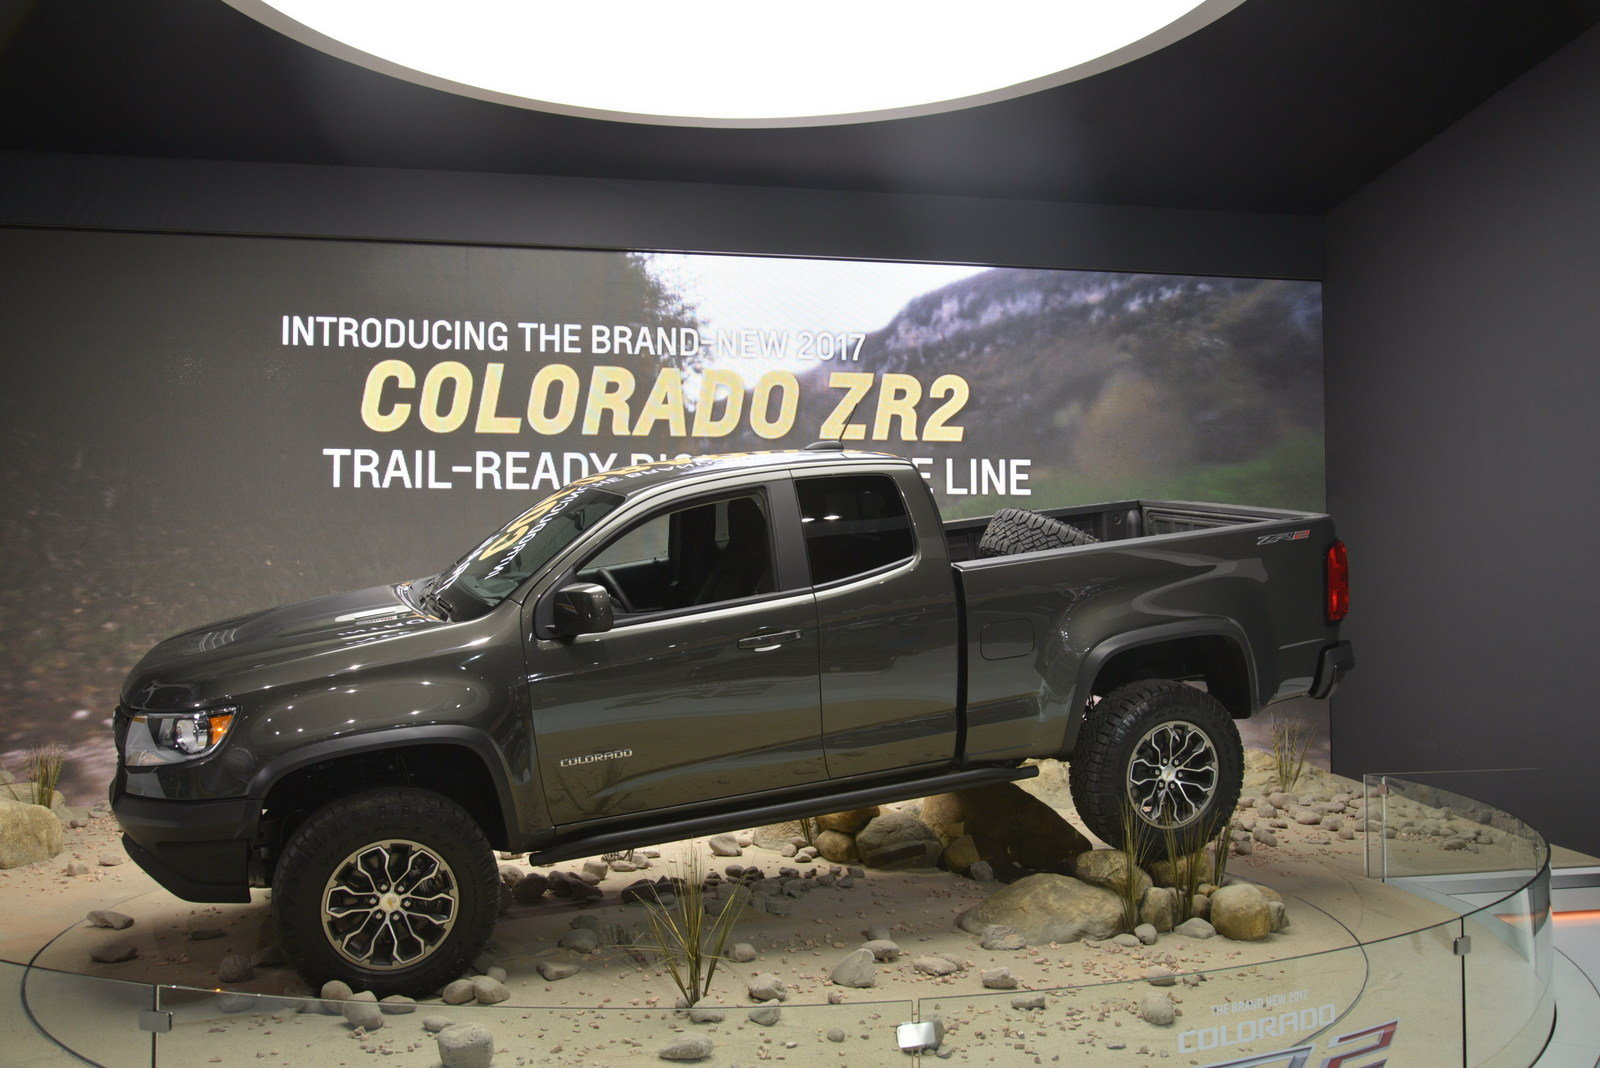 2017 chevrolet colorado zr2 picture 696477 truck review top speed. Black Bedroom Furniture Sets. Home Design Ideas